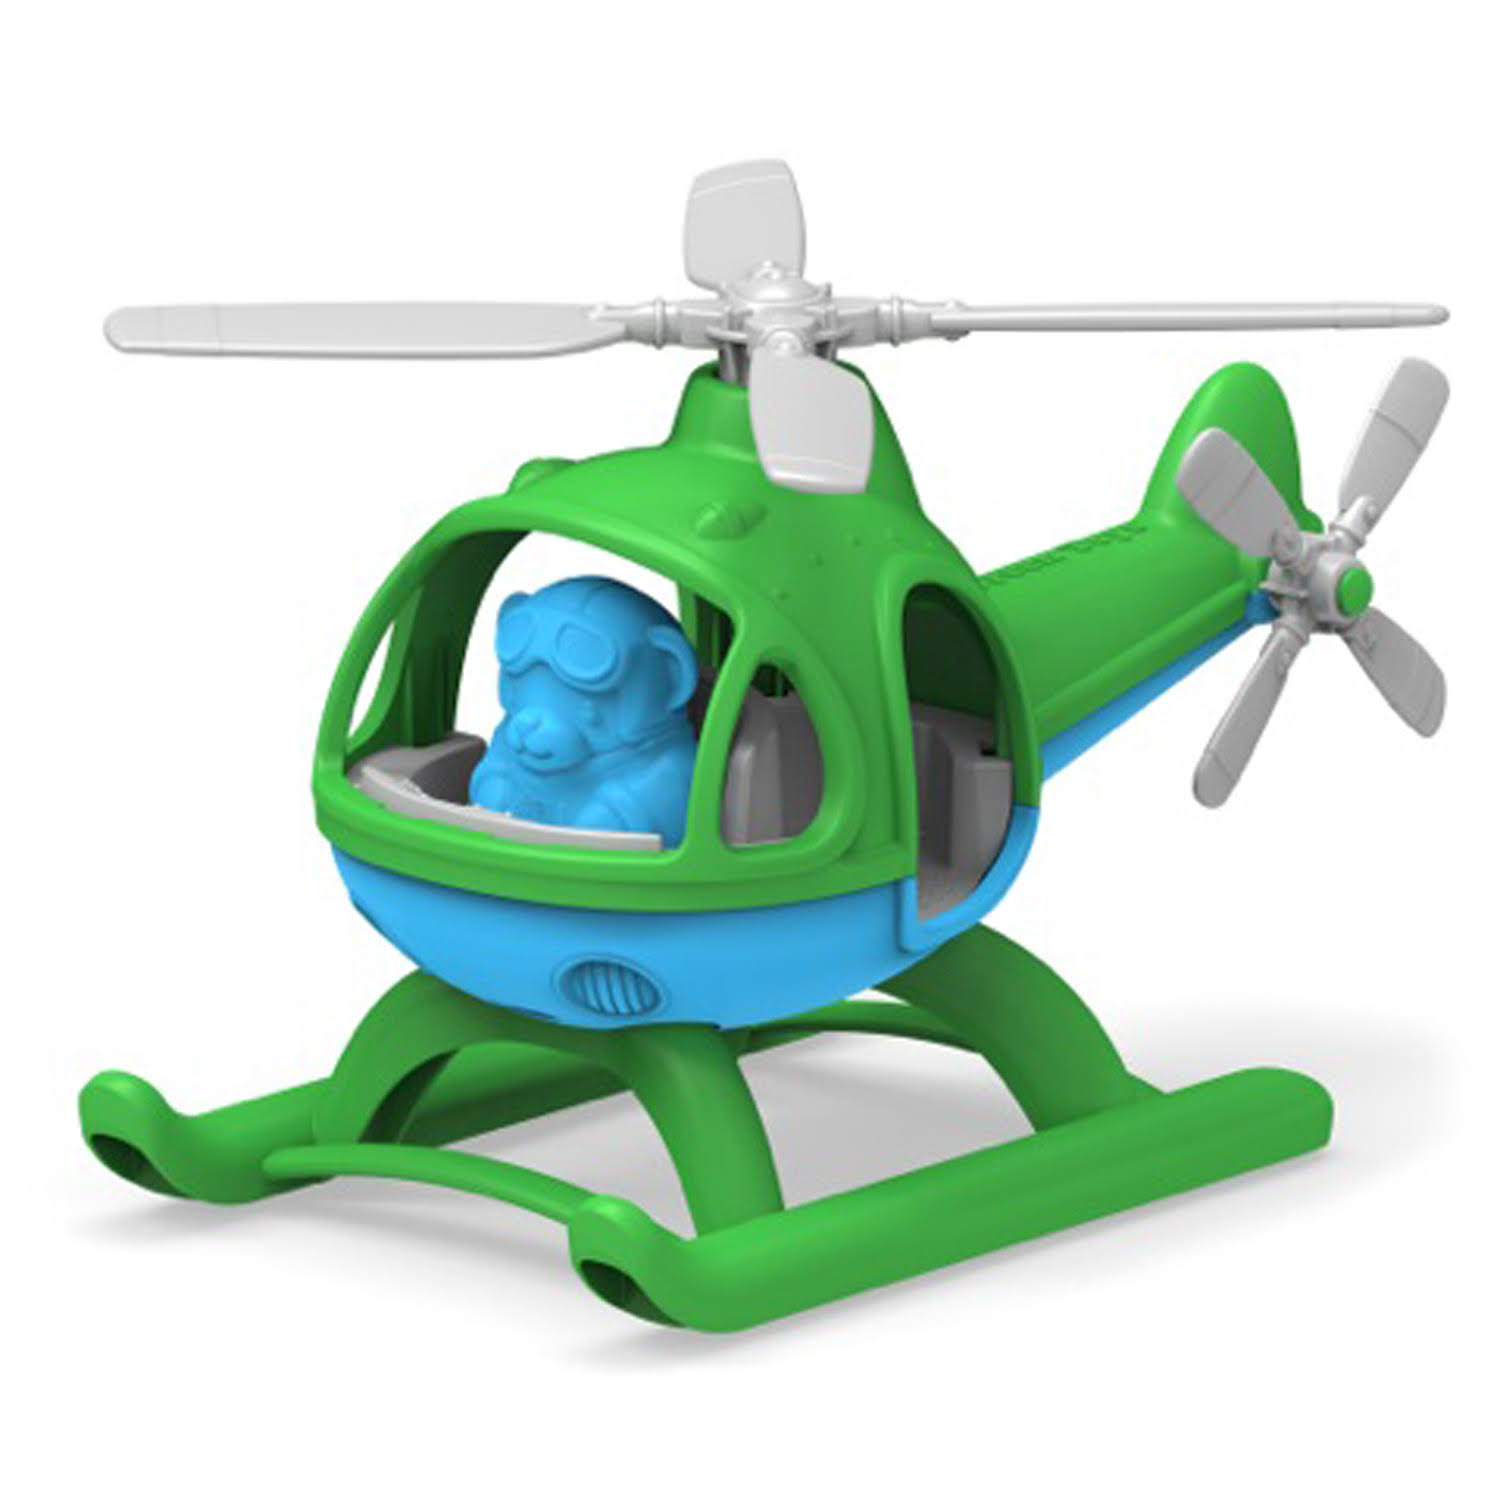 Green Toys Helicopter Toy - Green and Blue